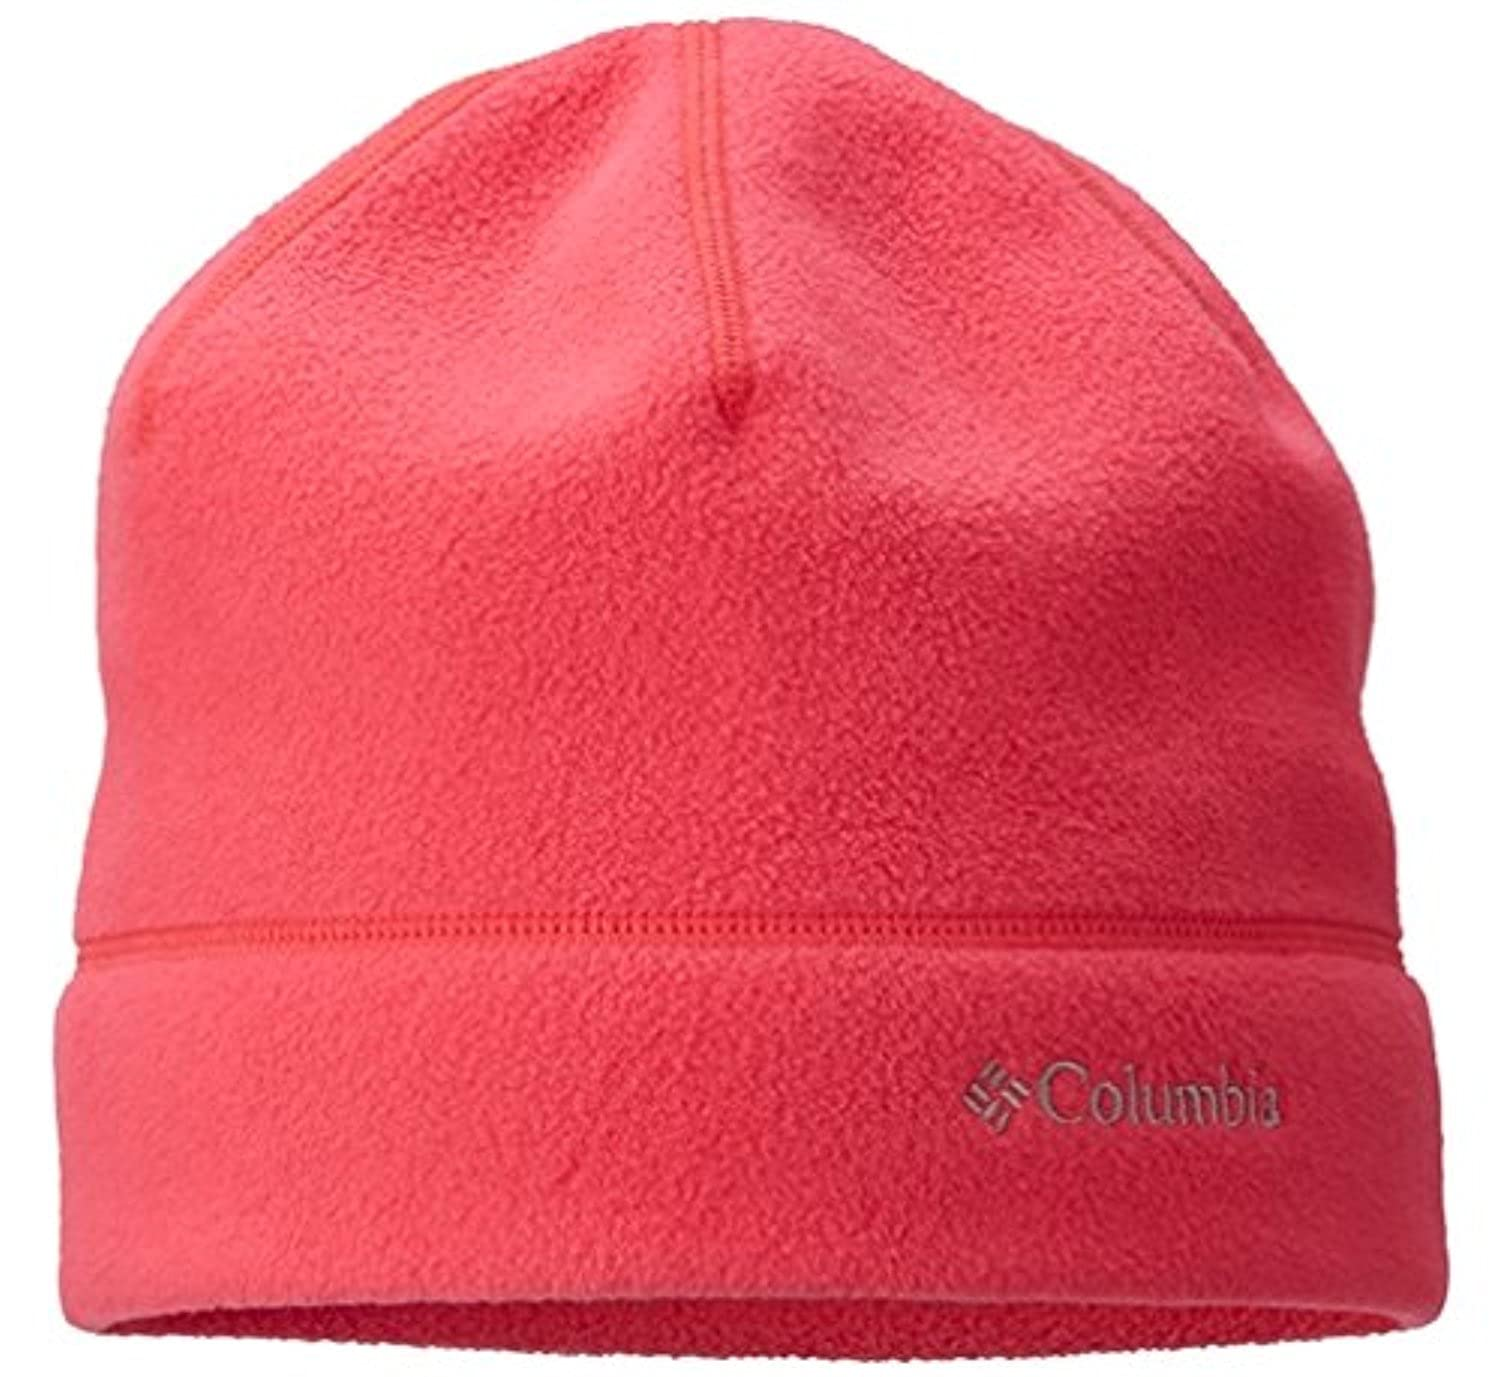 Columbia Unisex Warmer Days Beanie Hat at Amazon Women s Clothing store  8d1174f4a70